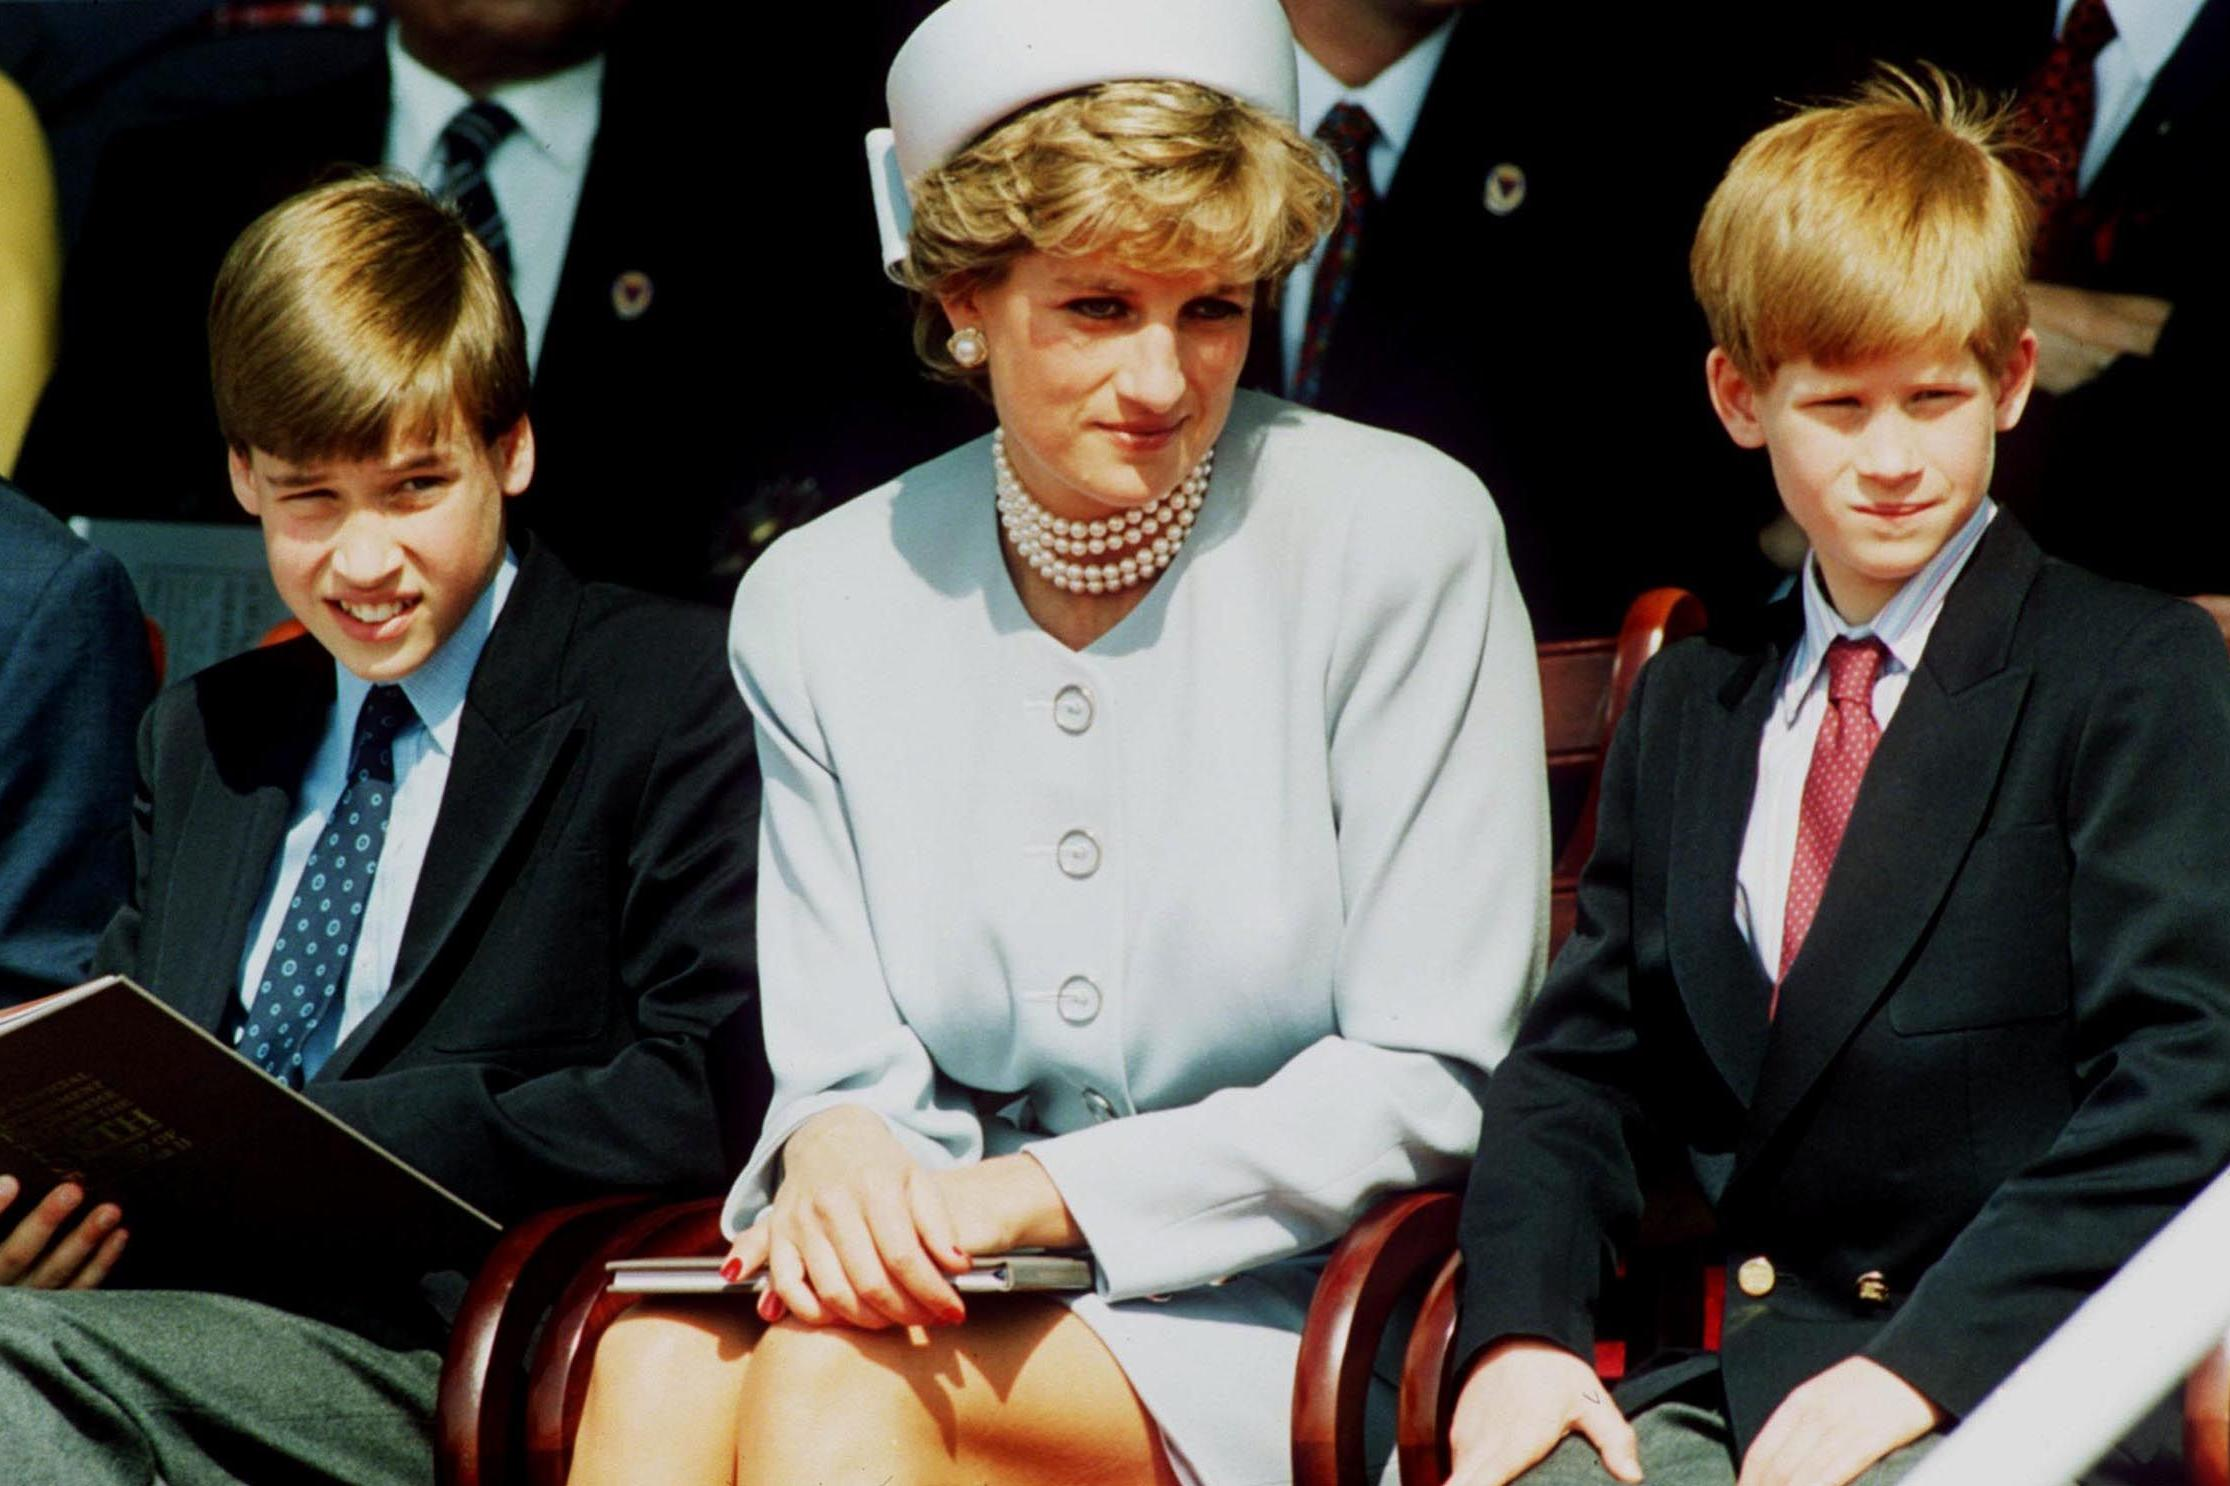 Prince William And Harry: How Diana's Loss Still Affects Their Lives